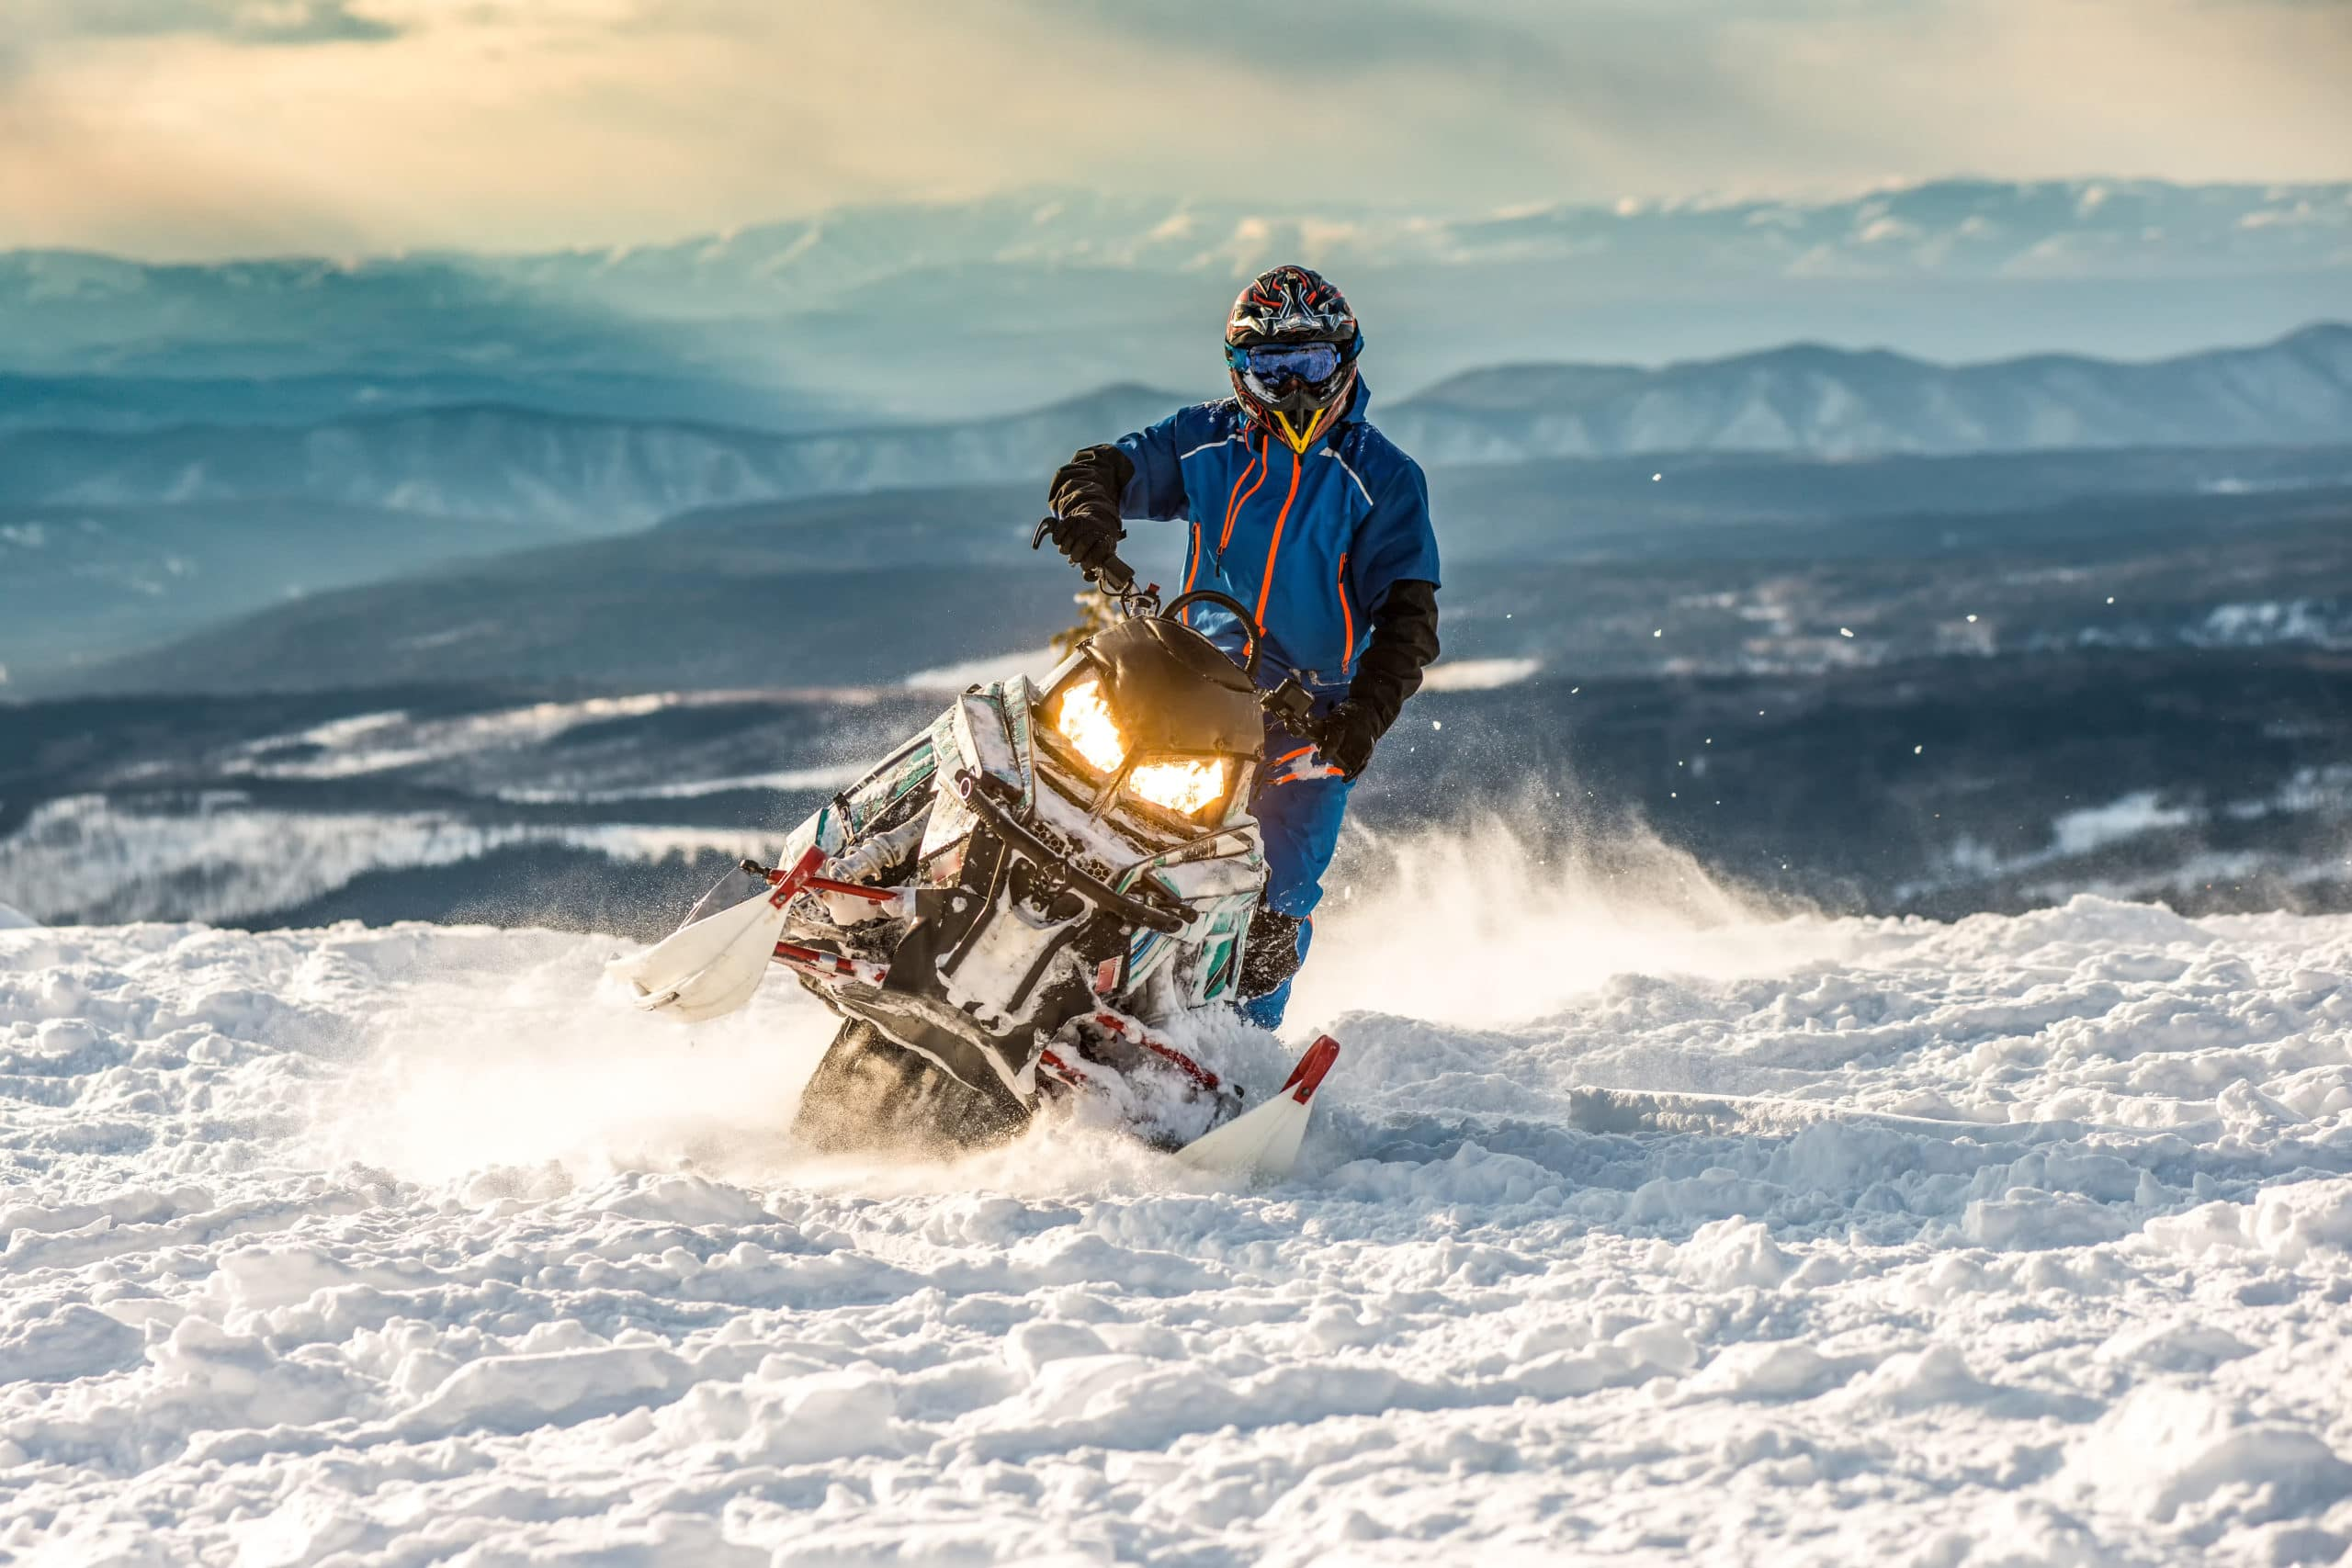 Snowmobile safety tips are important for all riders.